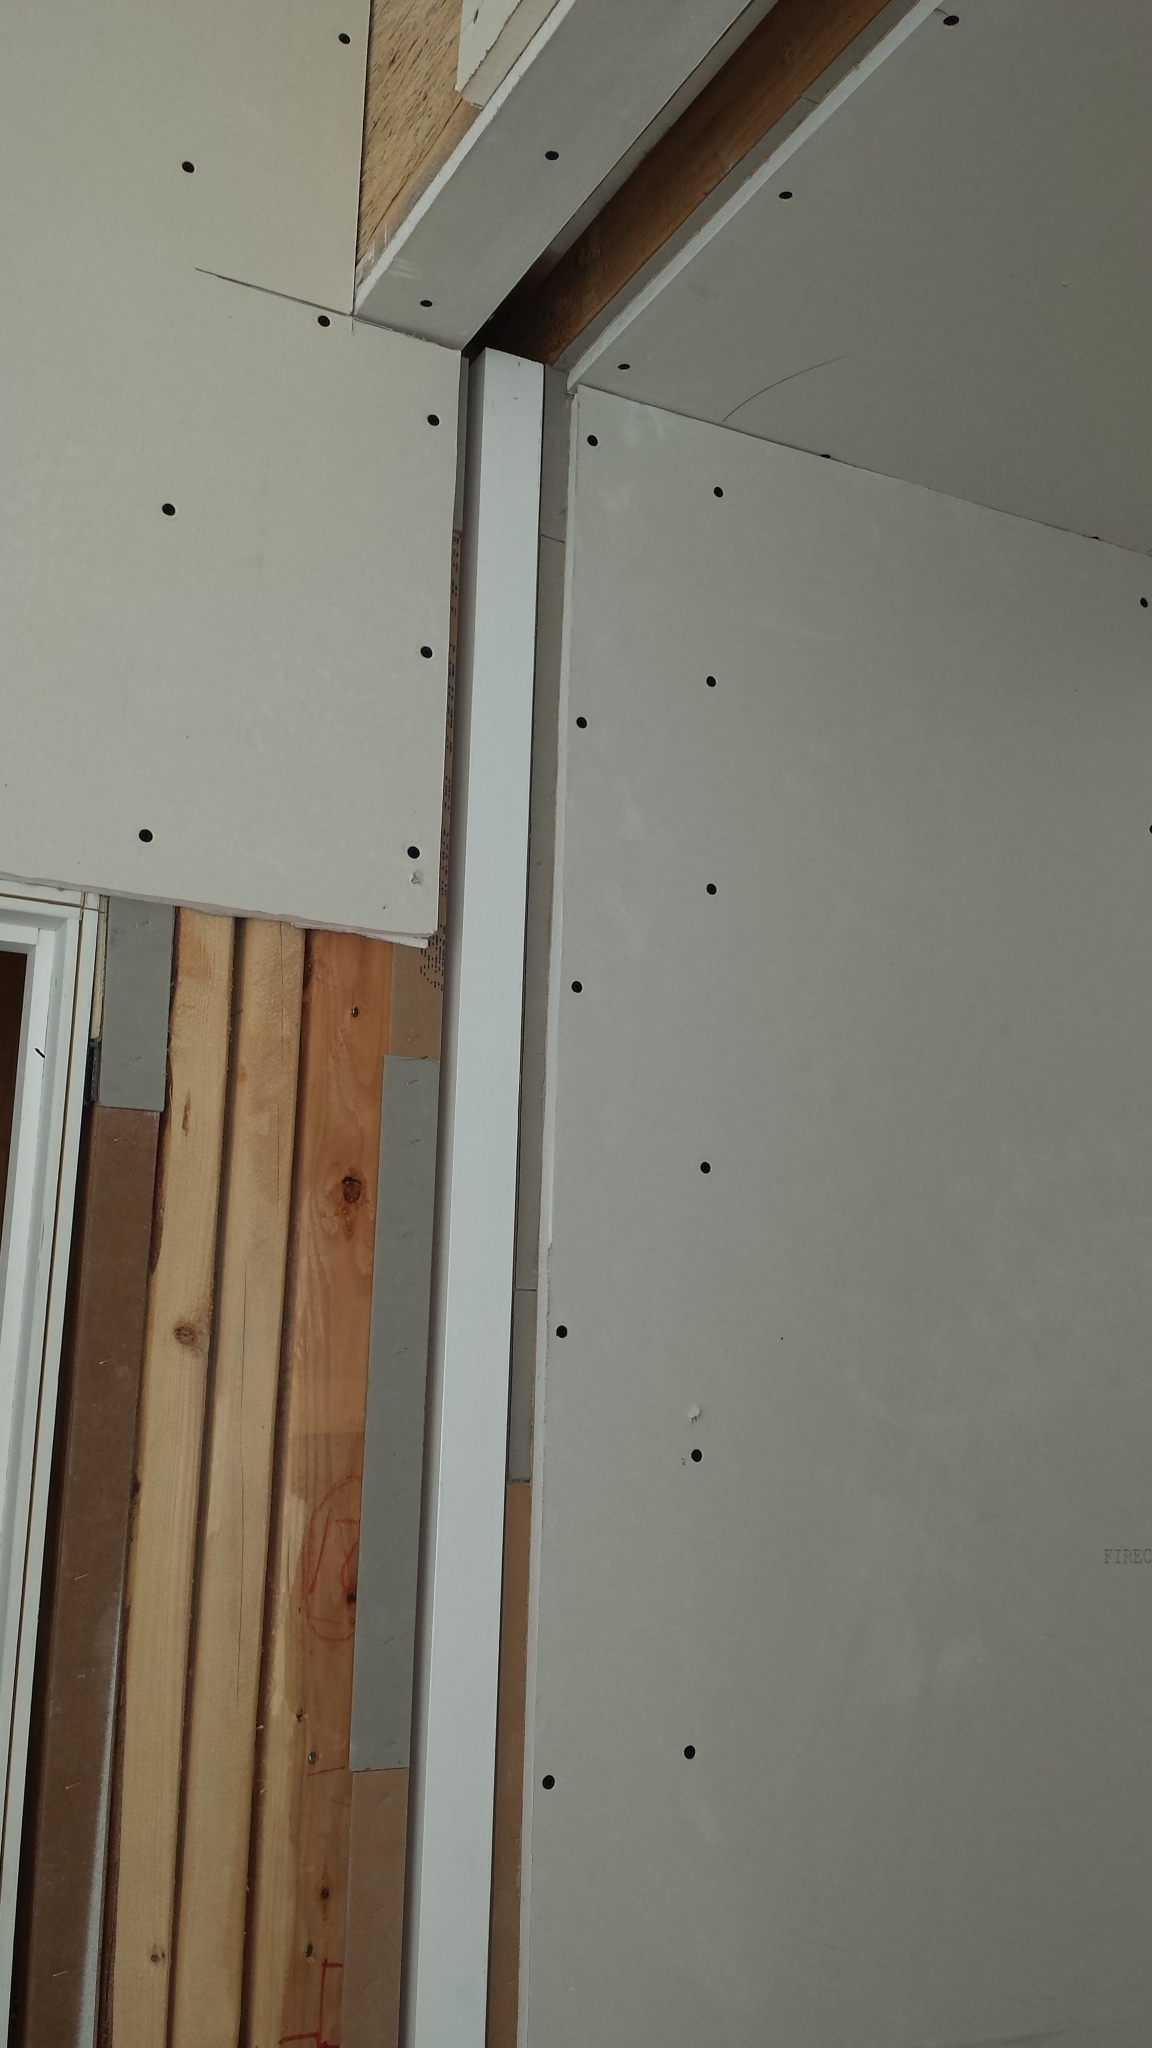 The areas around the opening are shimmed with strips of cardboard to get the drywall flush with the edge of the door.